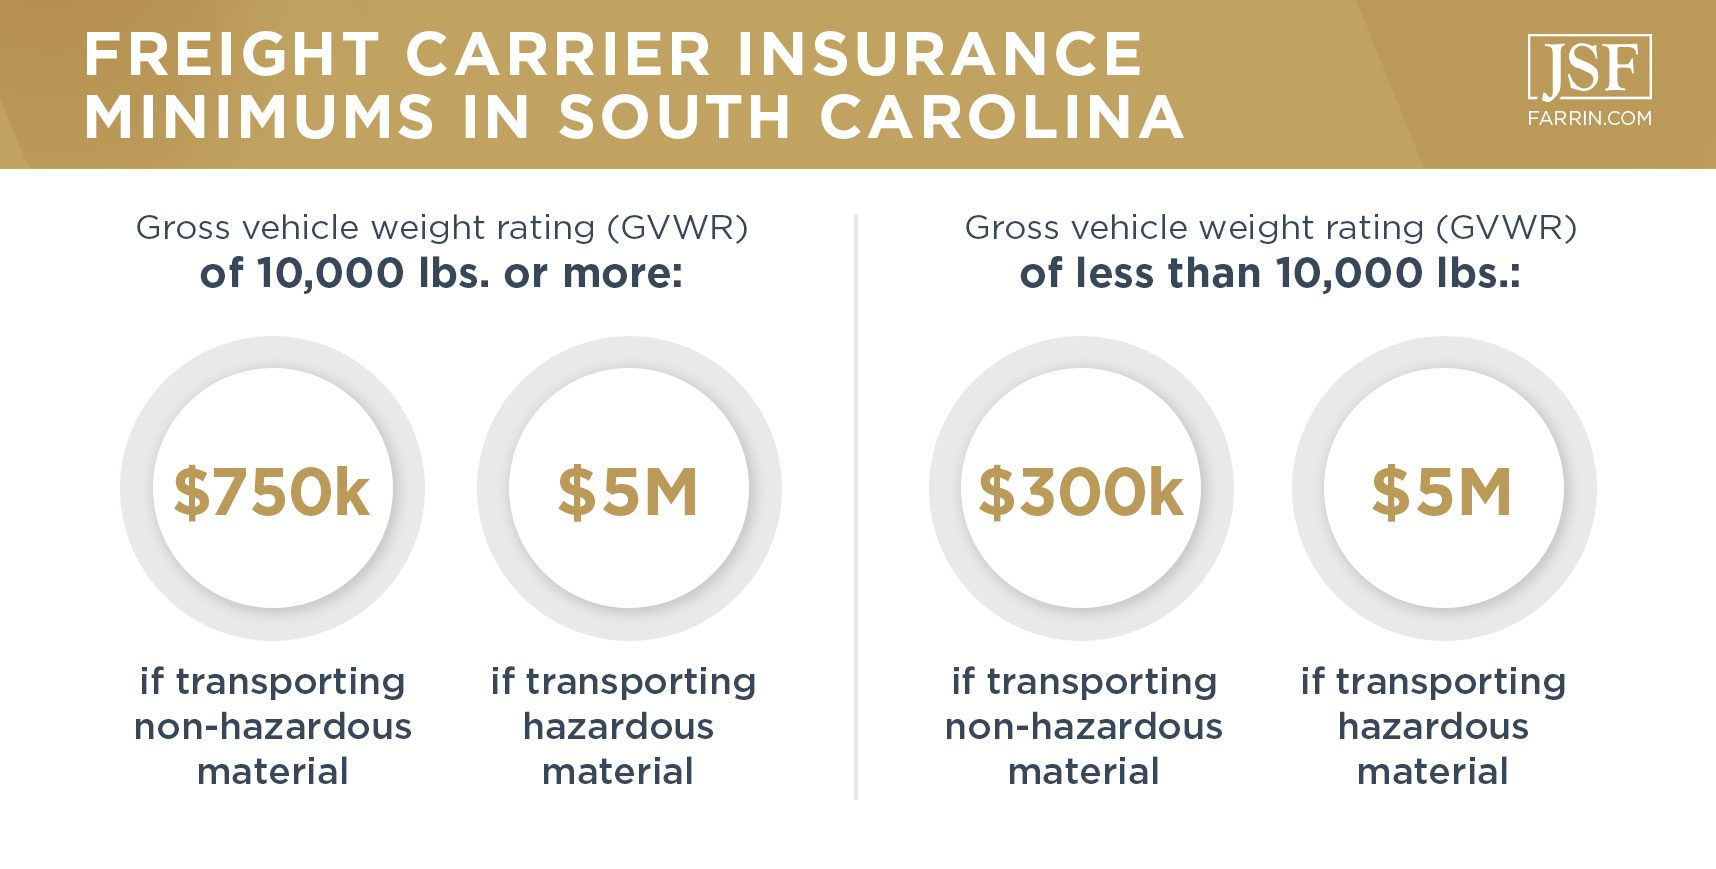 Freight carrier insurance minimums in South Carolina with GVWR above & below 10,000 pounds